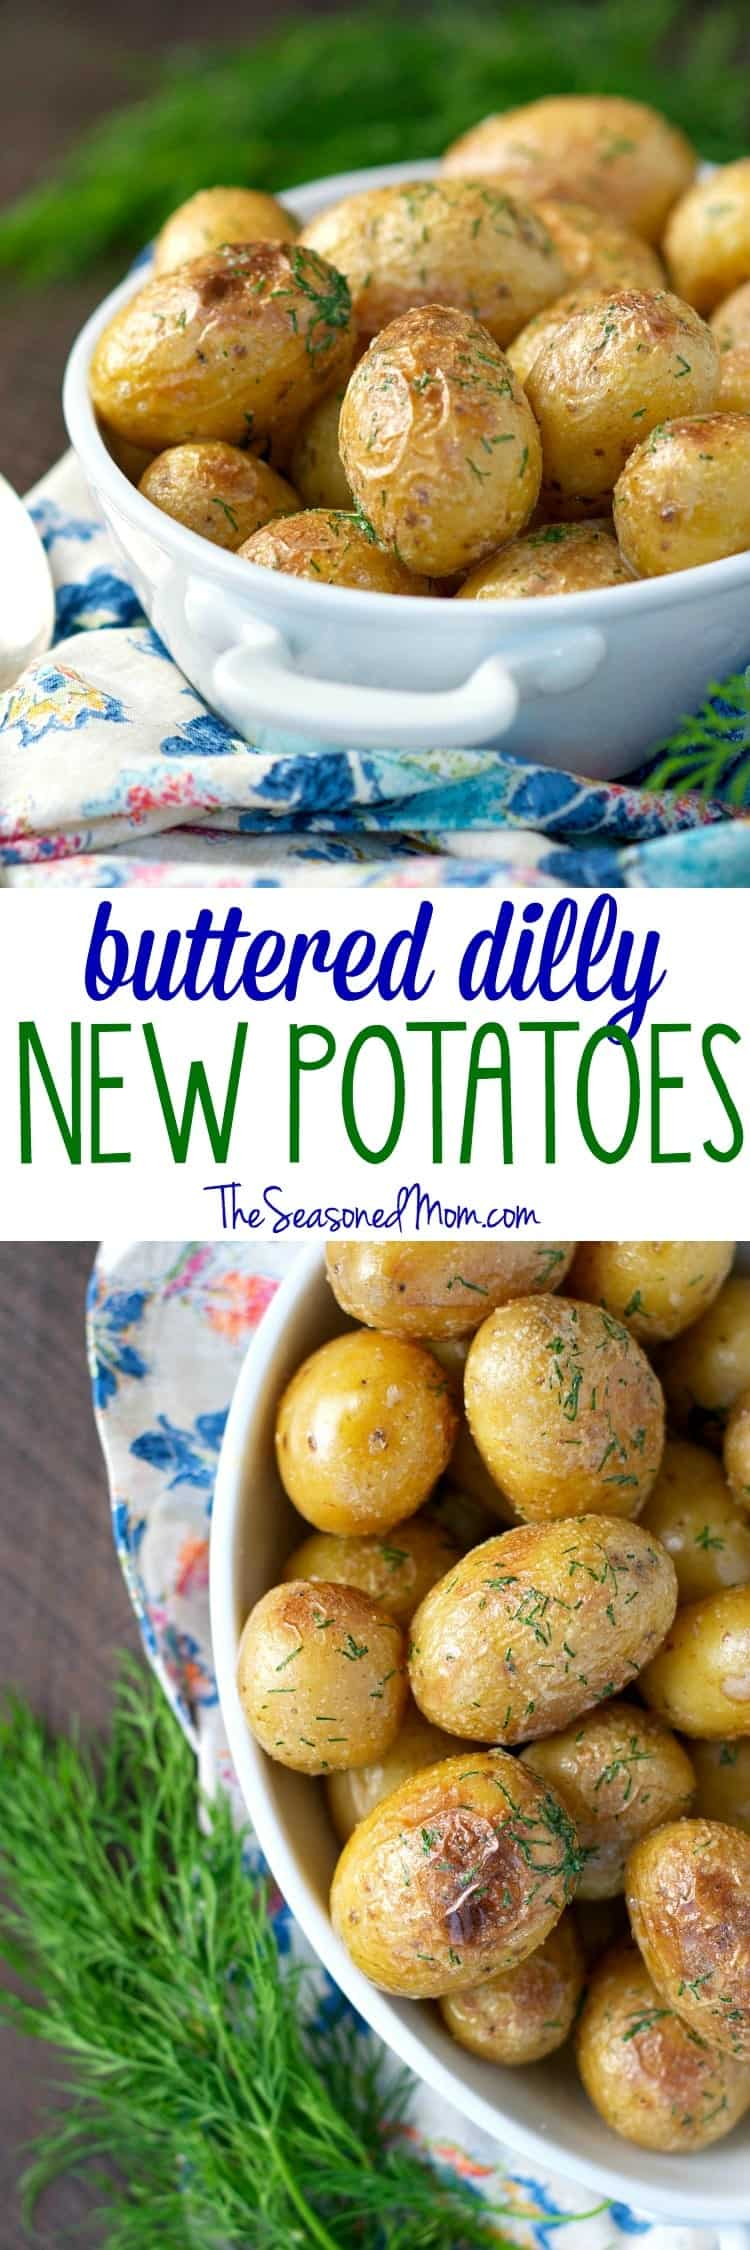 ... potatoes that are lightly dressed in butter, garlic, salt, and fresh